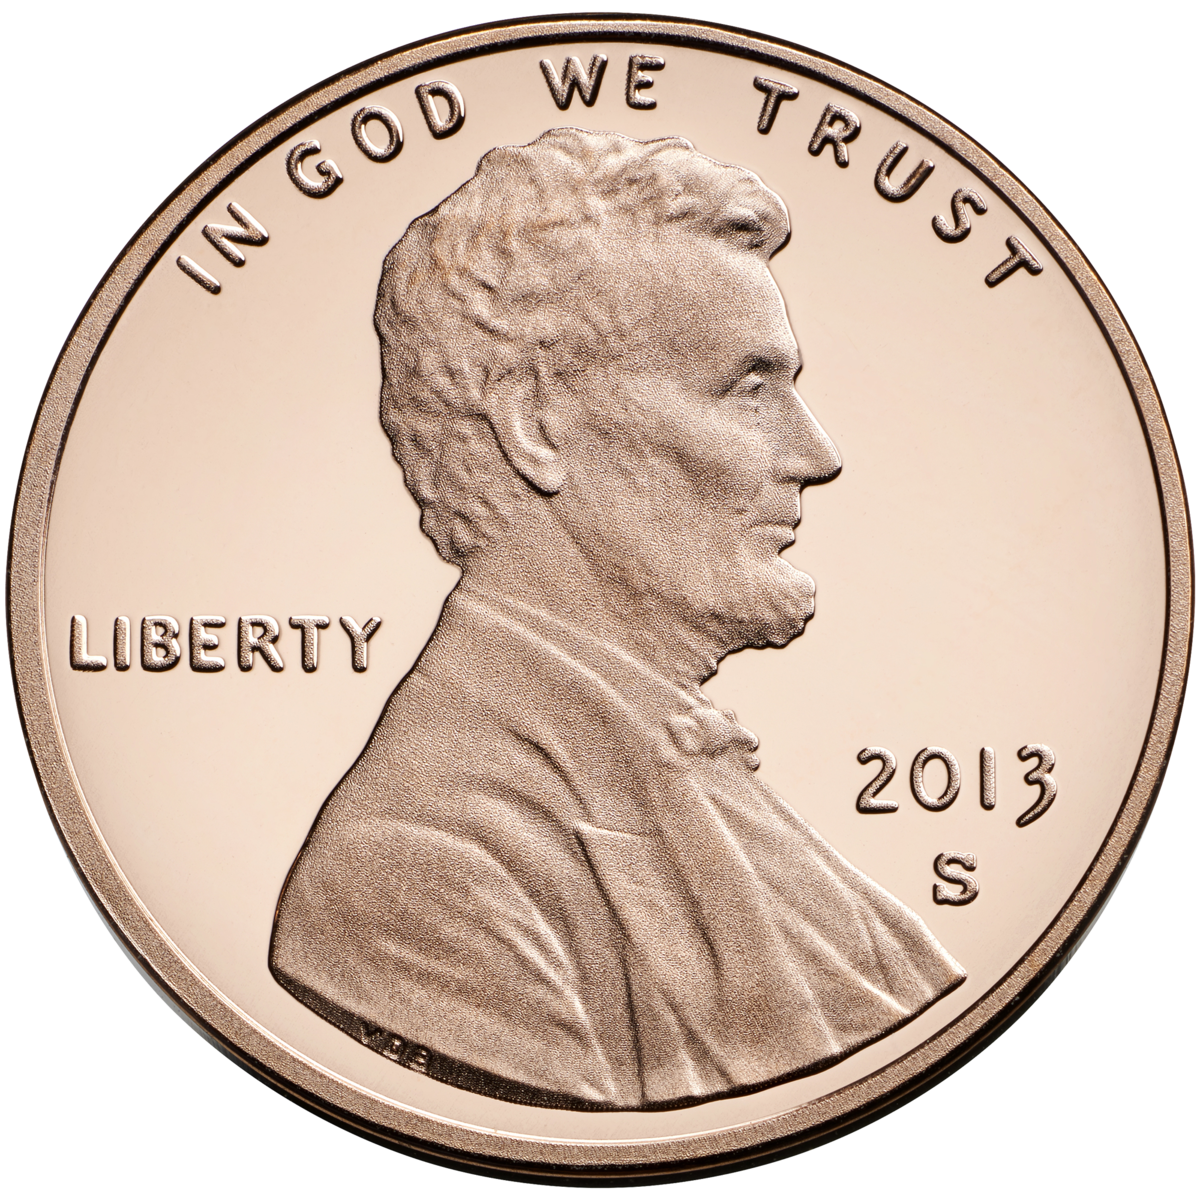 Lincoln cent wikipedia . Penny transparent png vector download